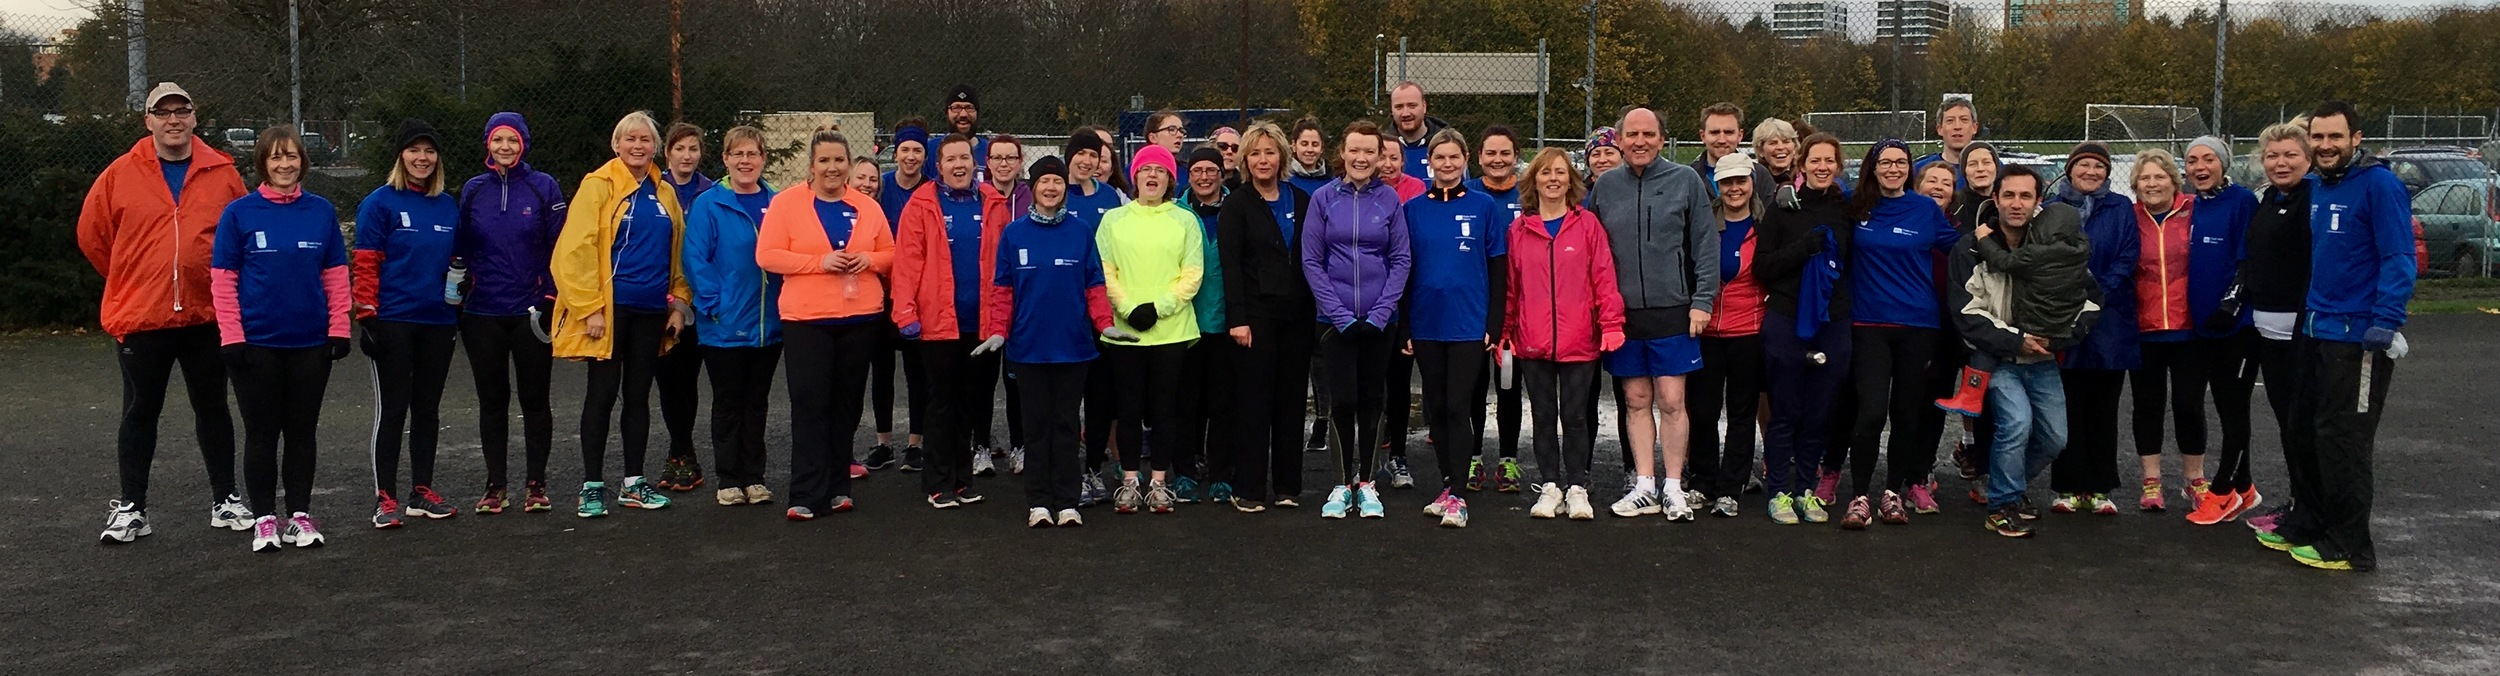 BelfastRunning's JogBelfast Ormeau Wed graduates just before completing Ormeau parkrun on Sat 21st November 2015. Fantastic Effort!!!